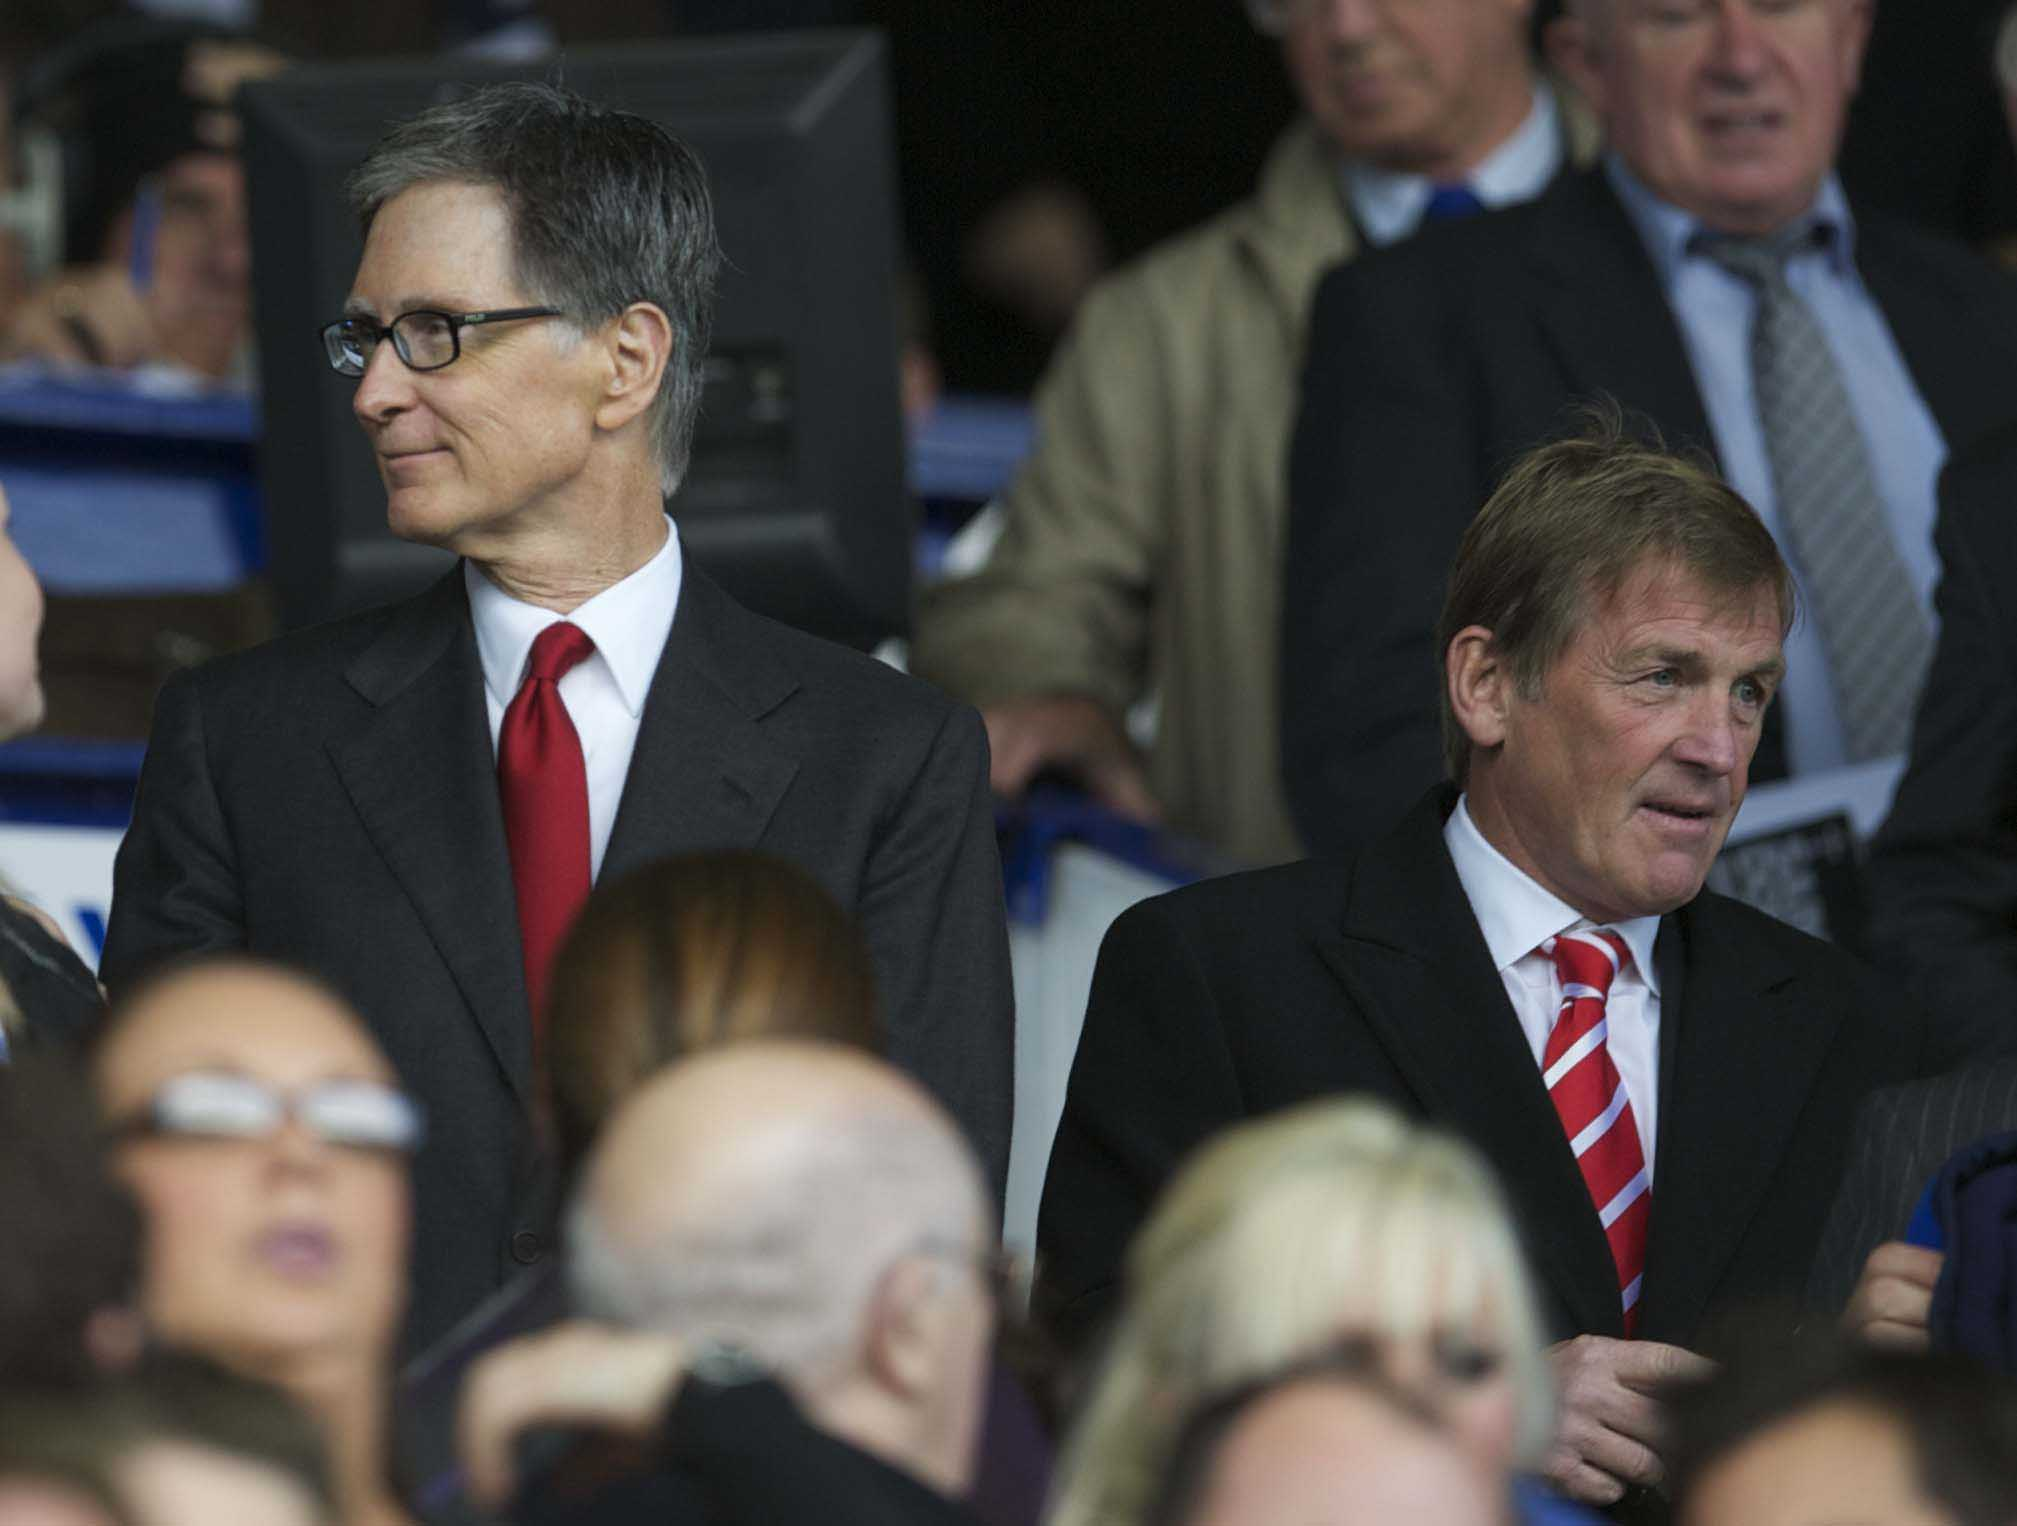 FSG: UNDOUBTED PROGRESS, BUT THERE'S JUST ONE THING…